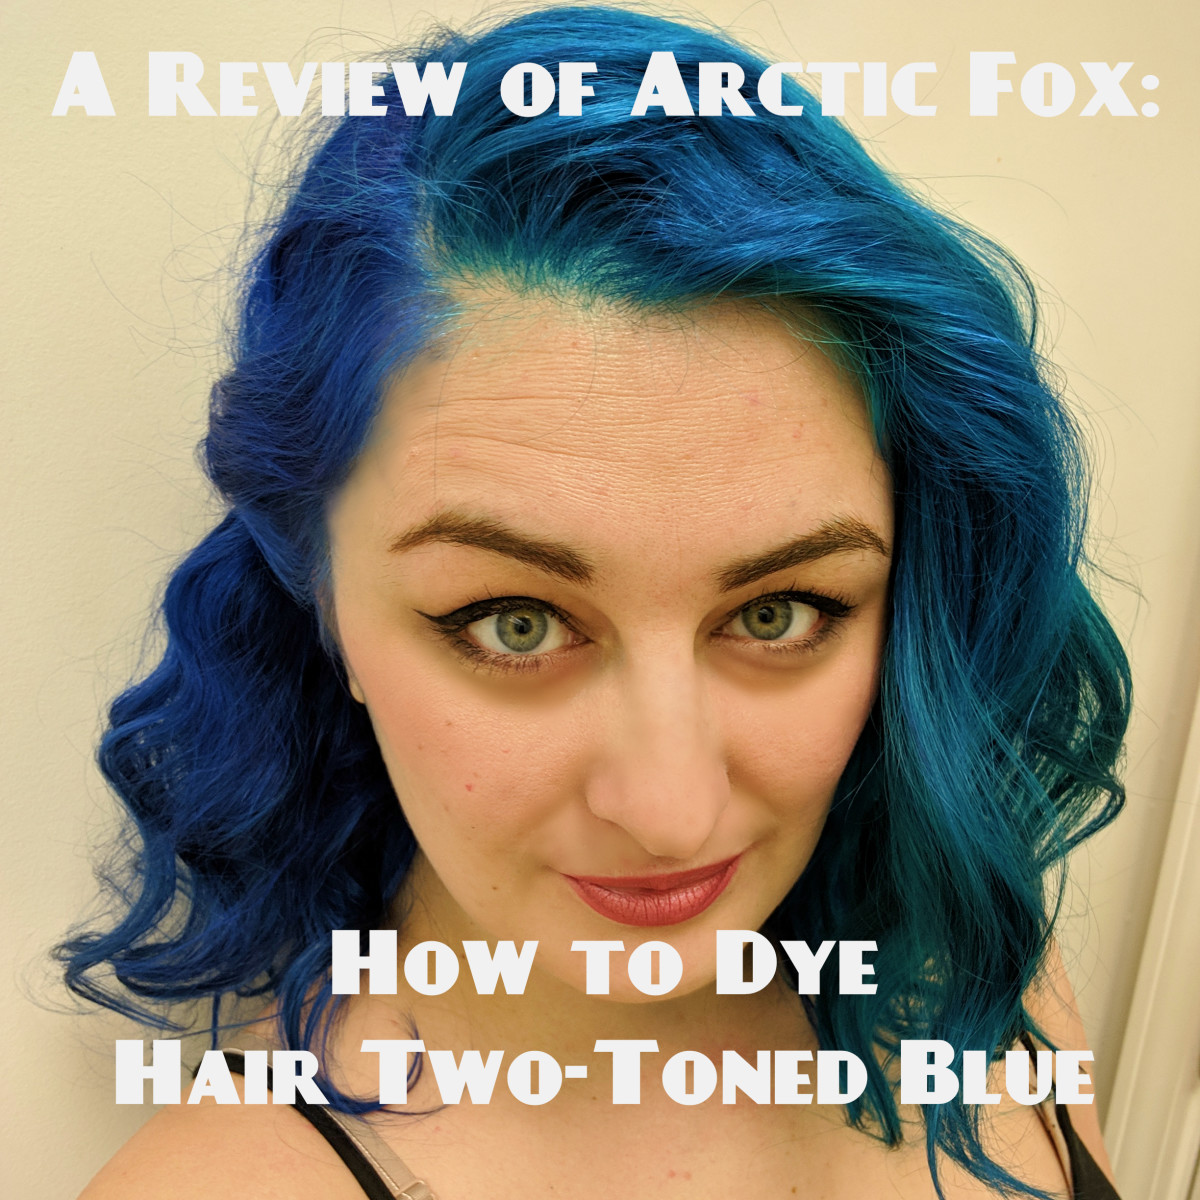 How to Dye Your Hair Two Toned Blue: A Review of Arctic Fox Poseidon & Aquamarine